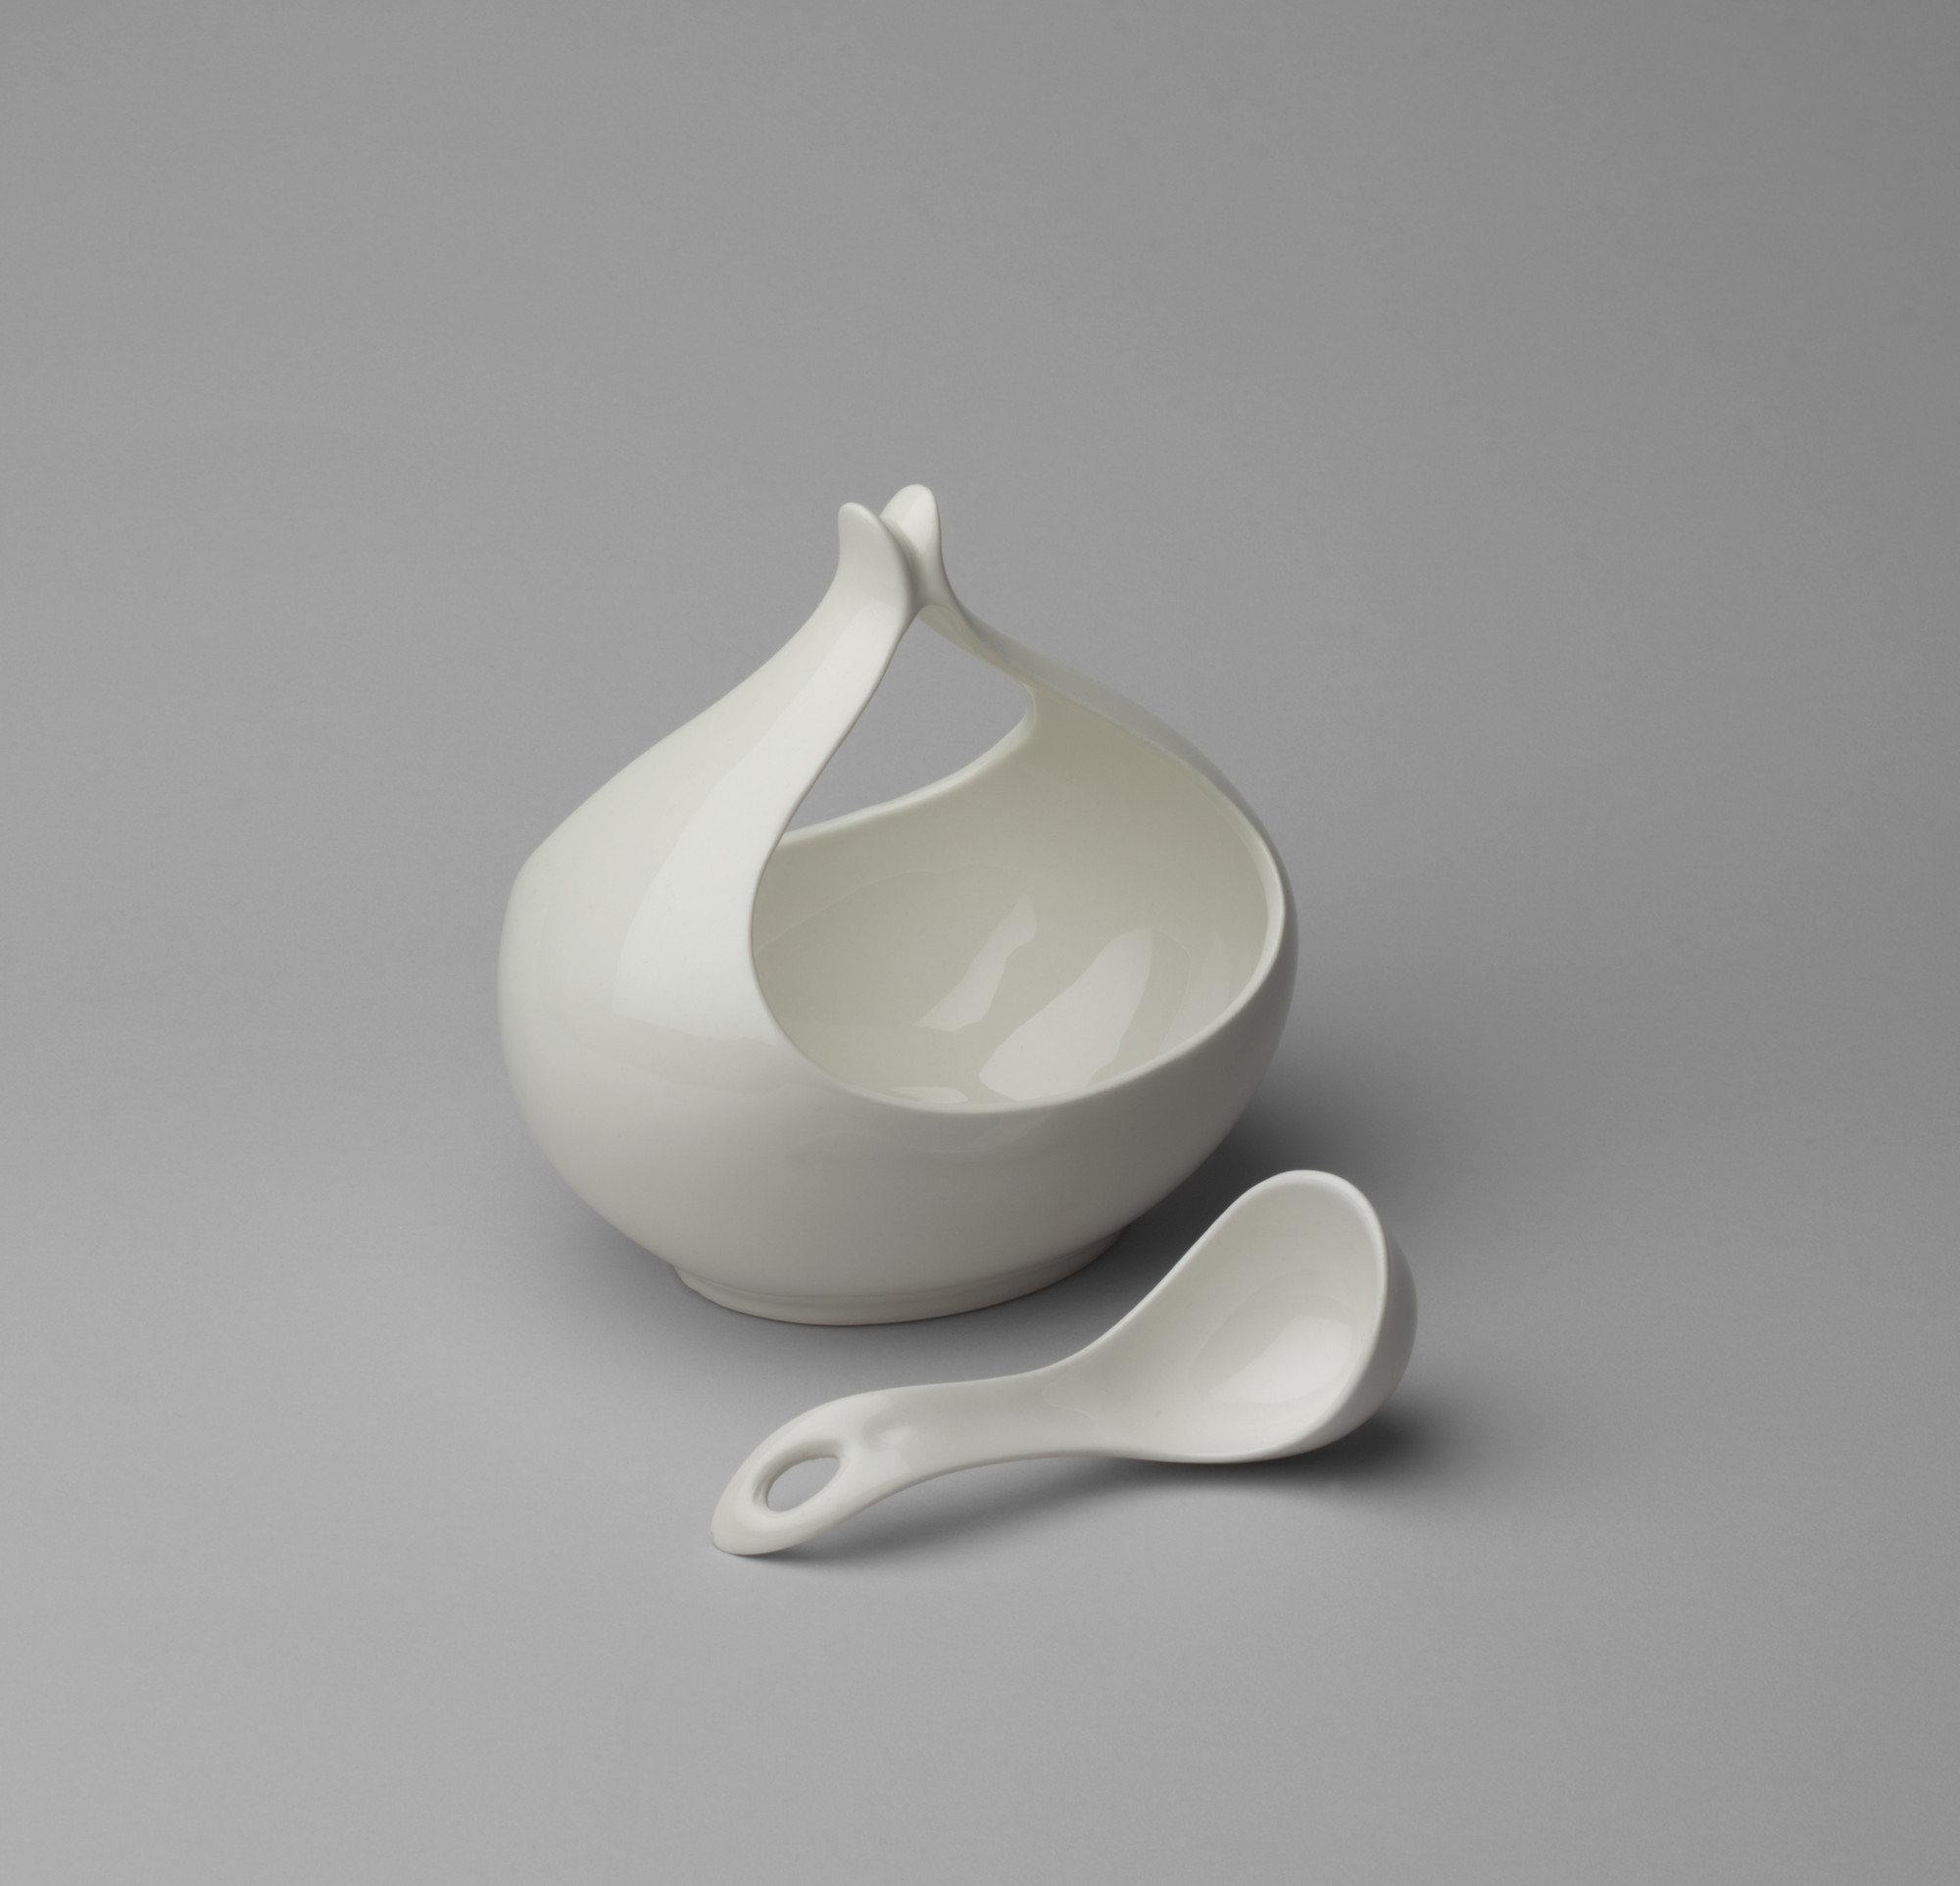 Eva Zeisel. Hallcraft/Tomorrow's Classic Sauce Boat with Ladle. c. 1949-50